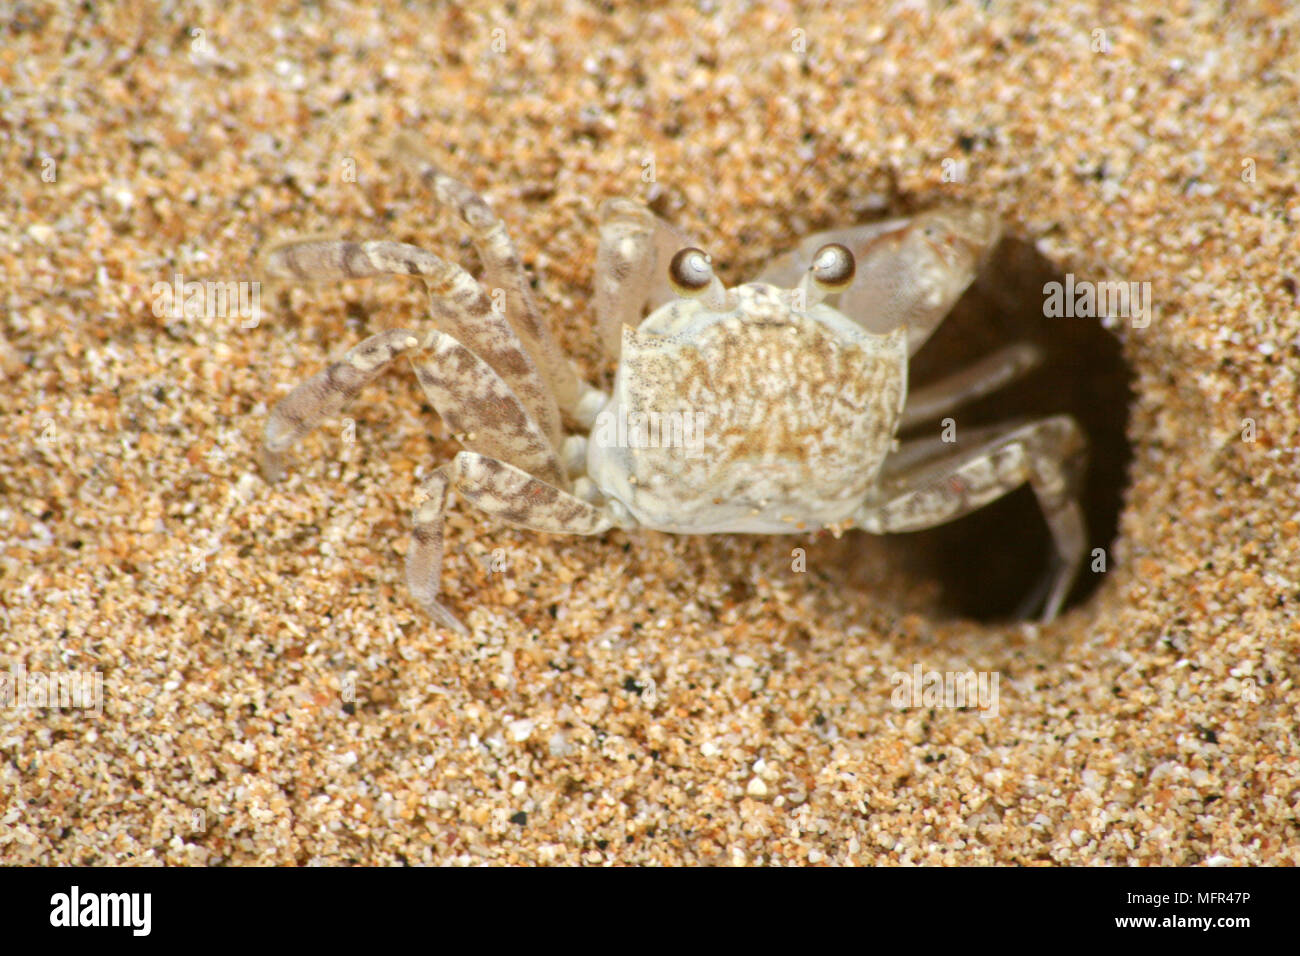 A Hawaiian crab (Lybia), also known as the boxer crab or pom-pom crab, coming out of a hole in the sand on a beach, Hawaii, USA. - Stock Image